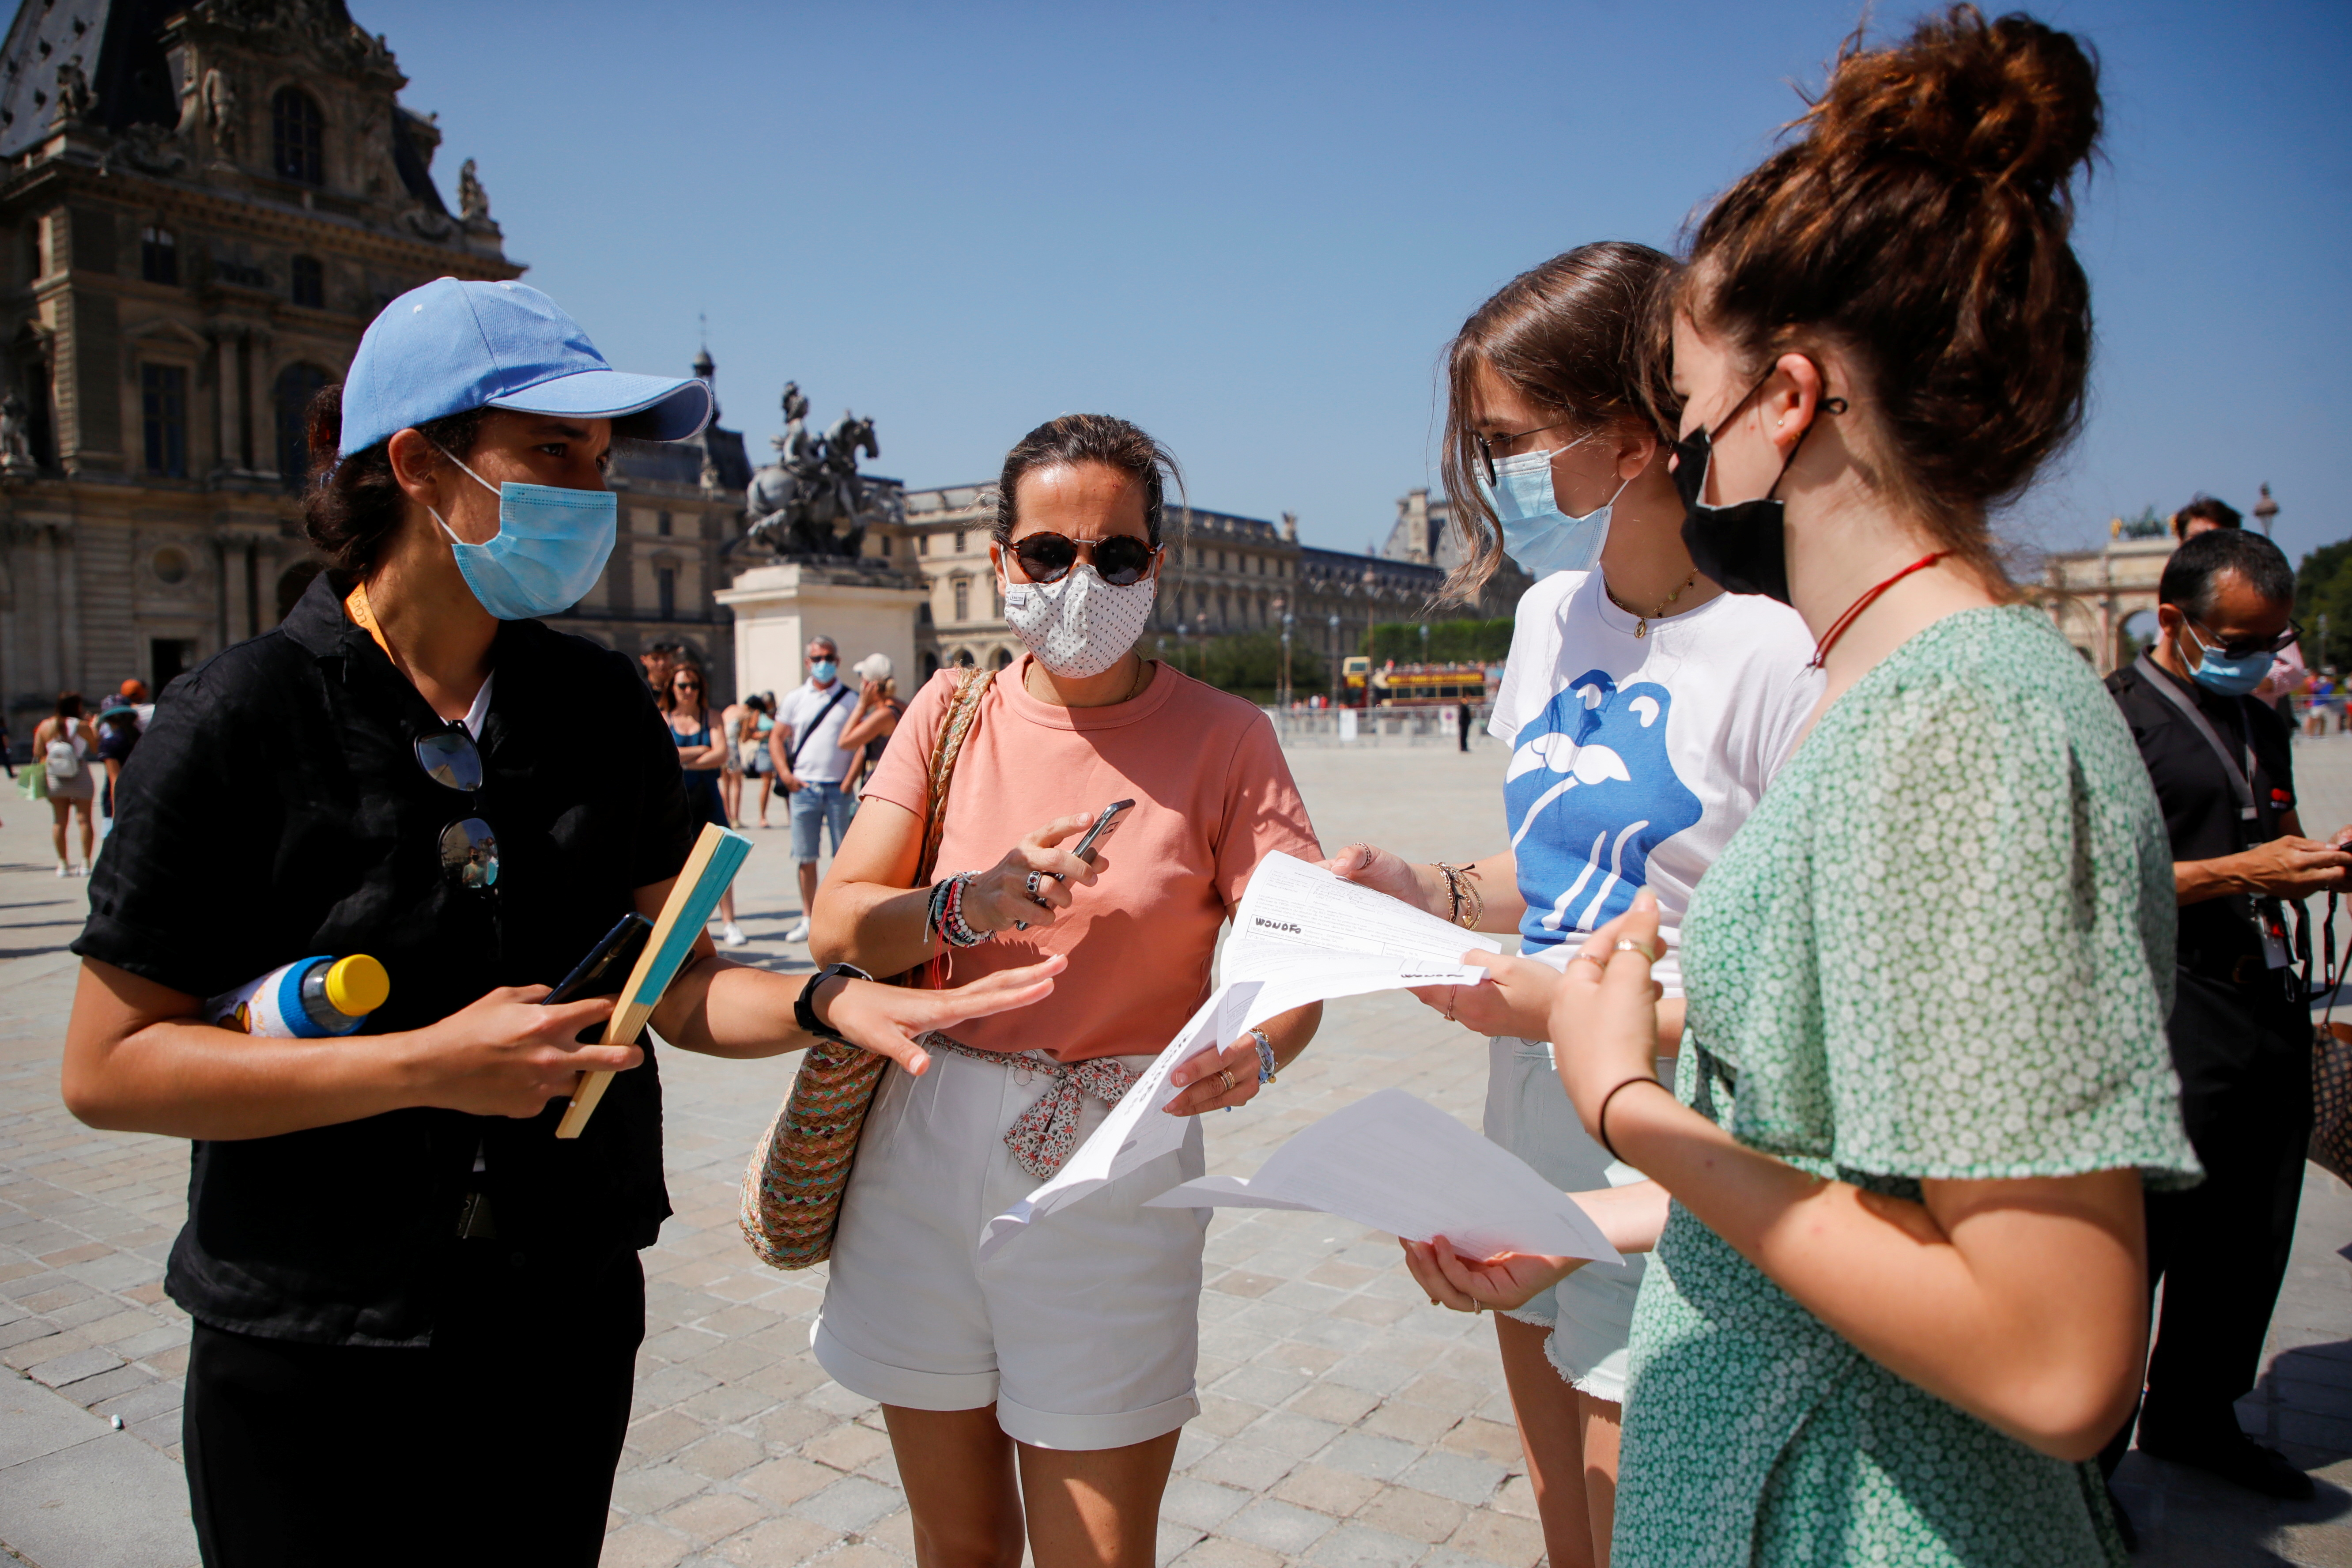 A security agent checks visitors' health passes in front of the Louvre museum entrance amid the coronavirus disease (COVID-19) outbreak in Paris, France, July 21, 2021. REUTERS/Sarah Meyssonnier